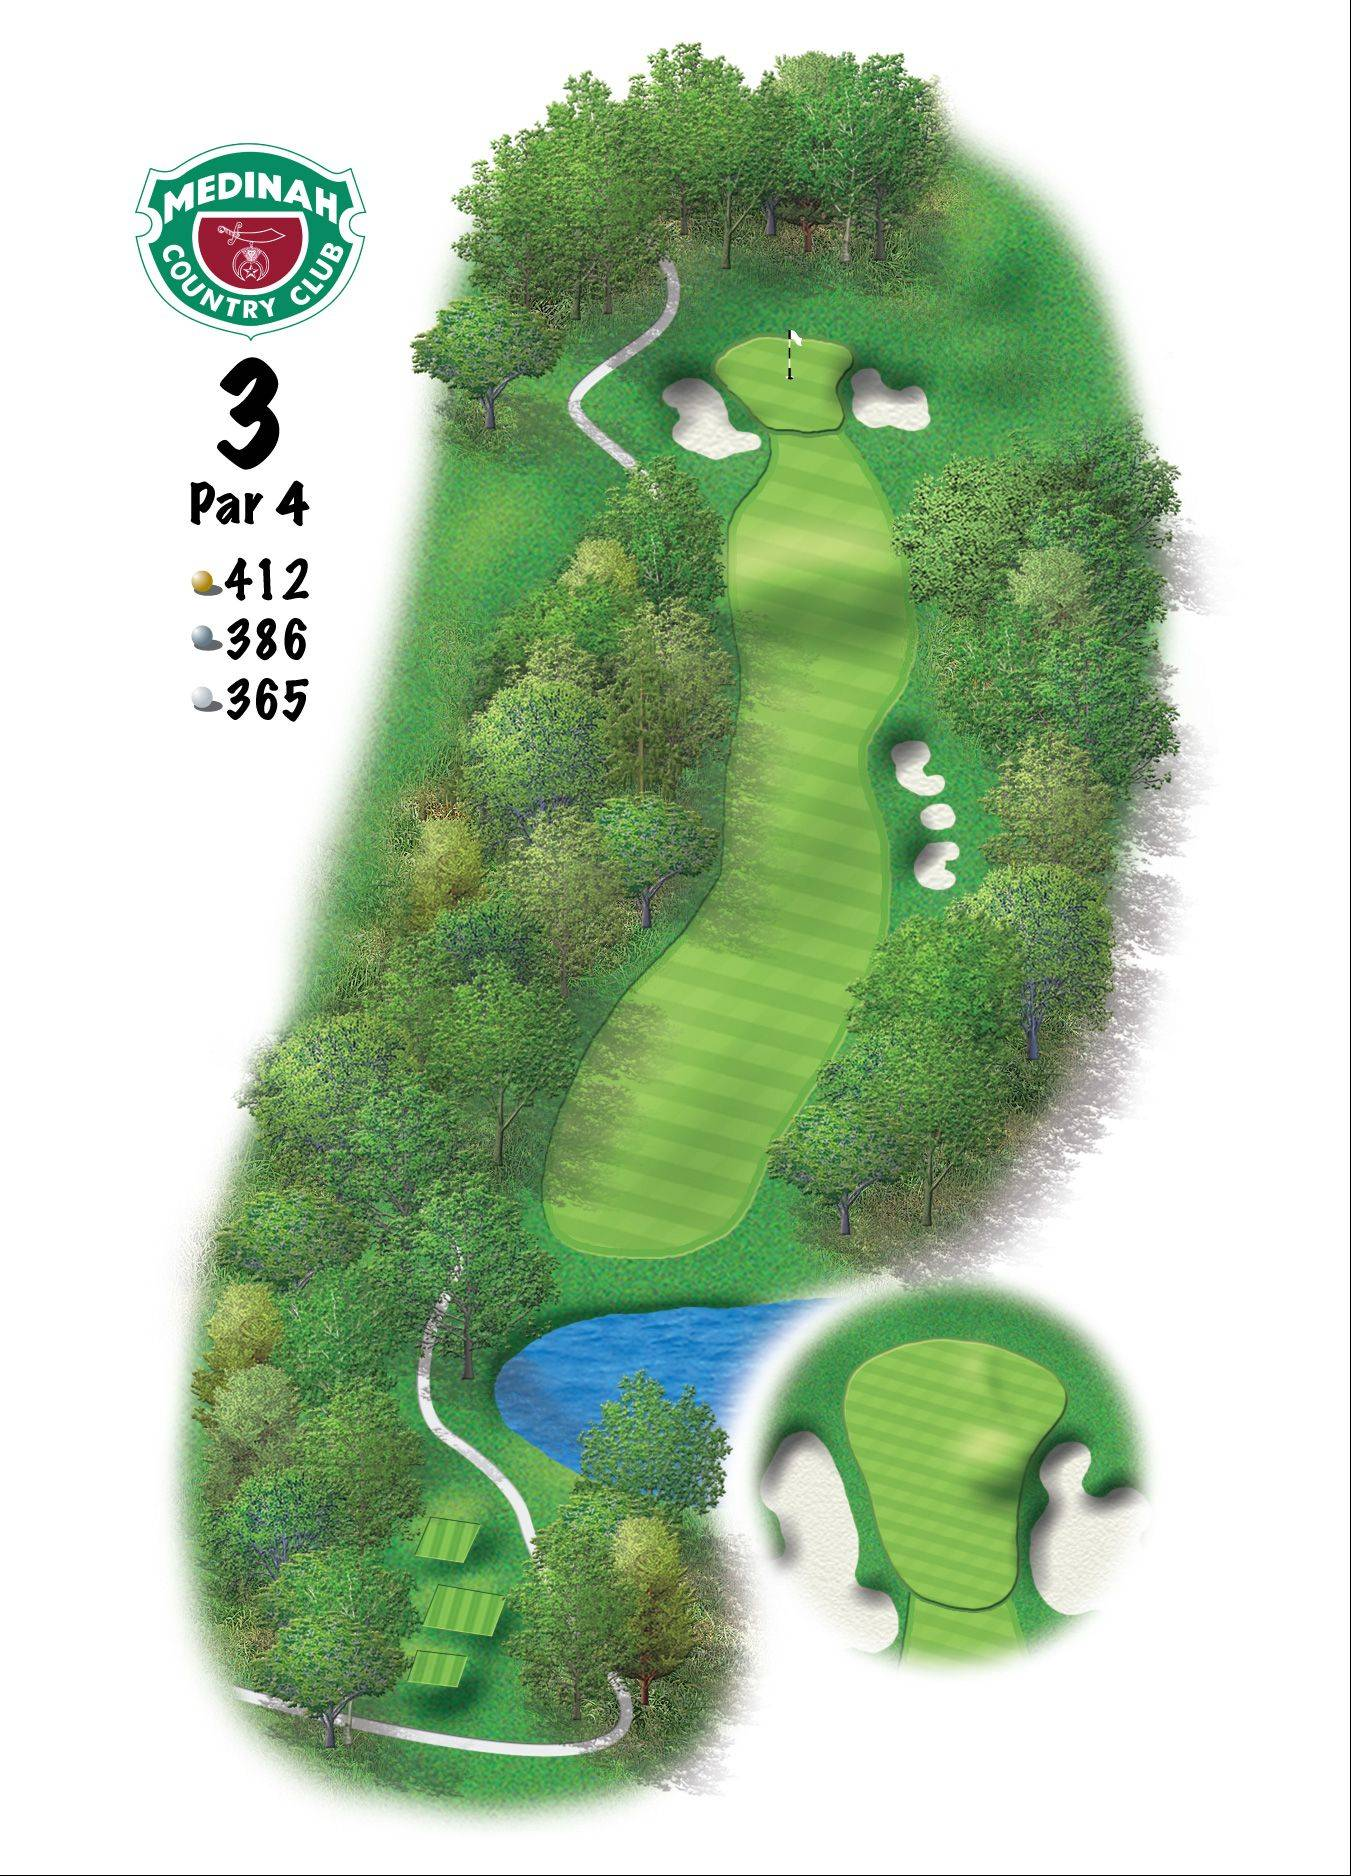 Hole 3 of the Ryder Cup course at Medinah. 412 yards/377 meters, Par-4, From the tee, the players will see the Rees Jones bunkers down the right side that should be the target to work the ball right-to-left. They will have to try to stay to the right side to avoid the overhanging Medinah trees.